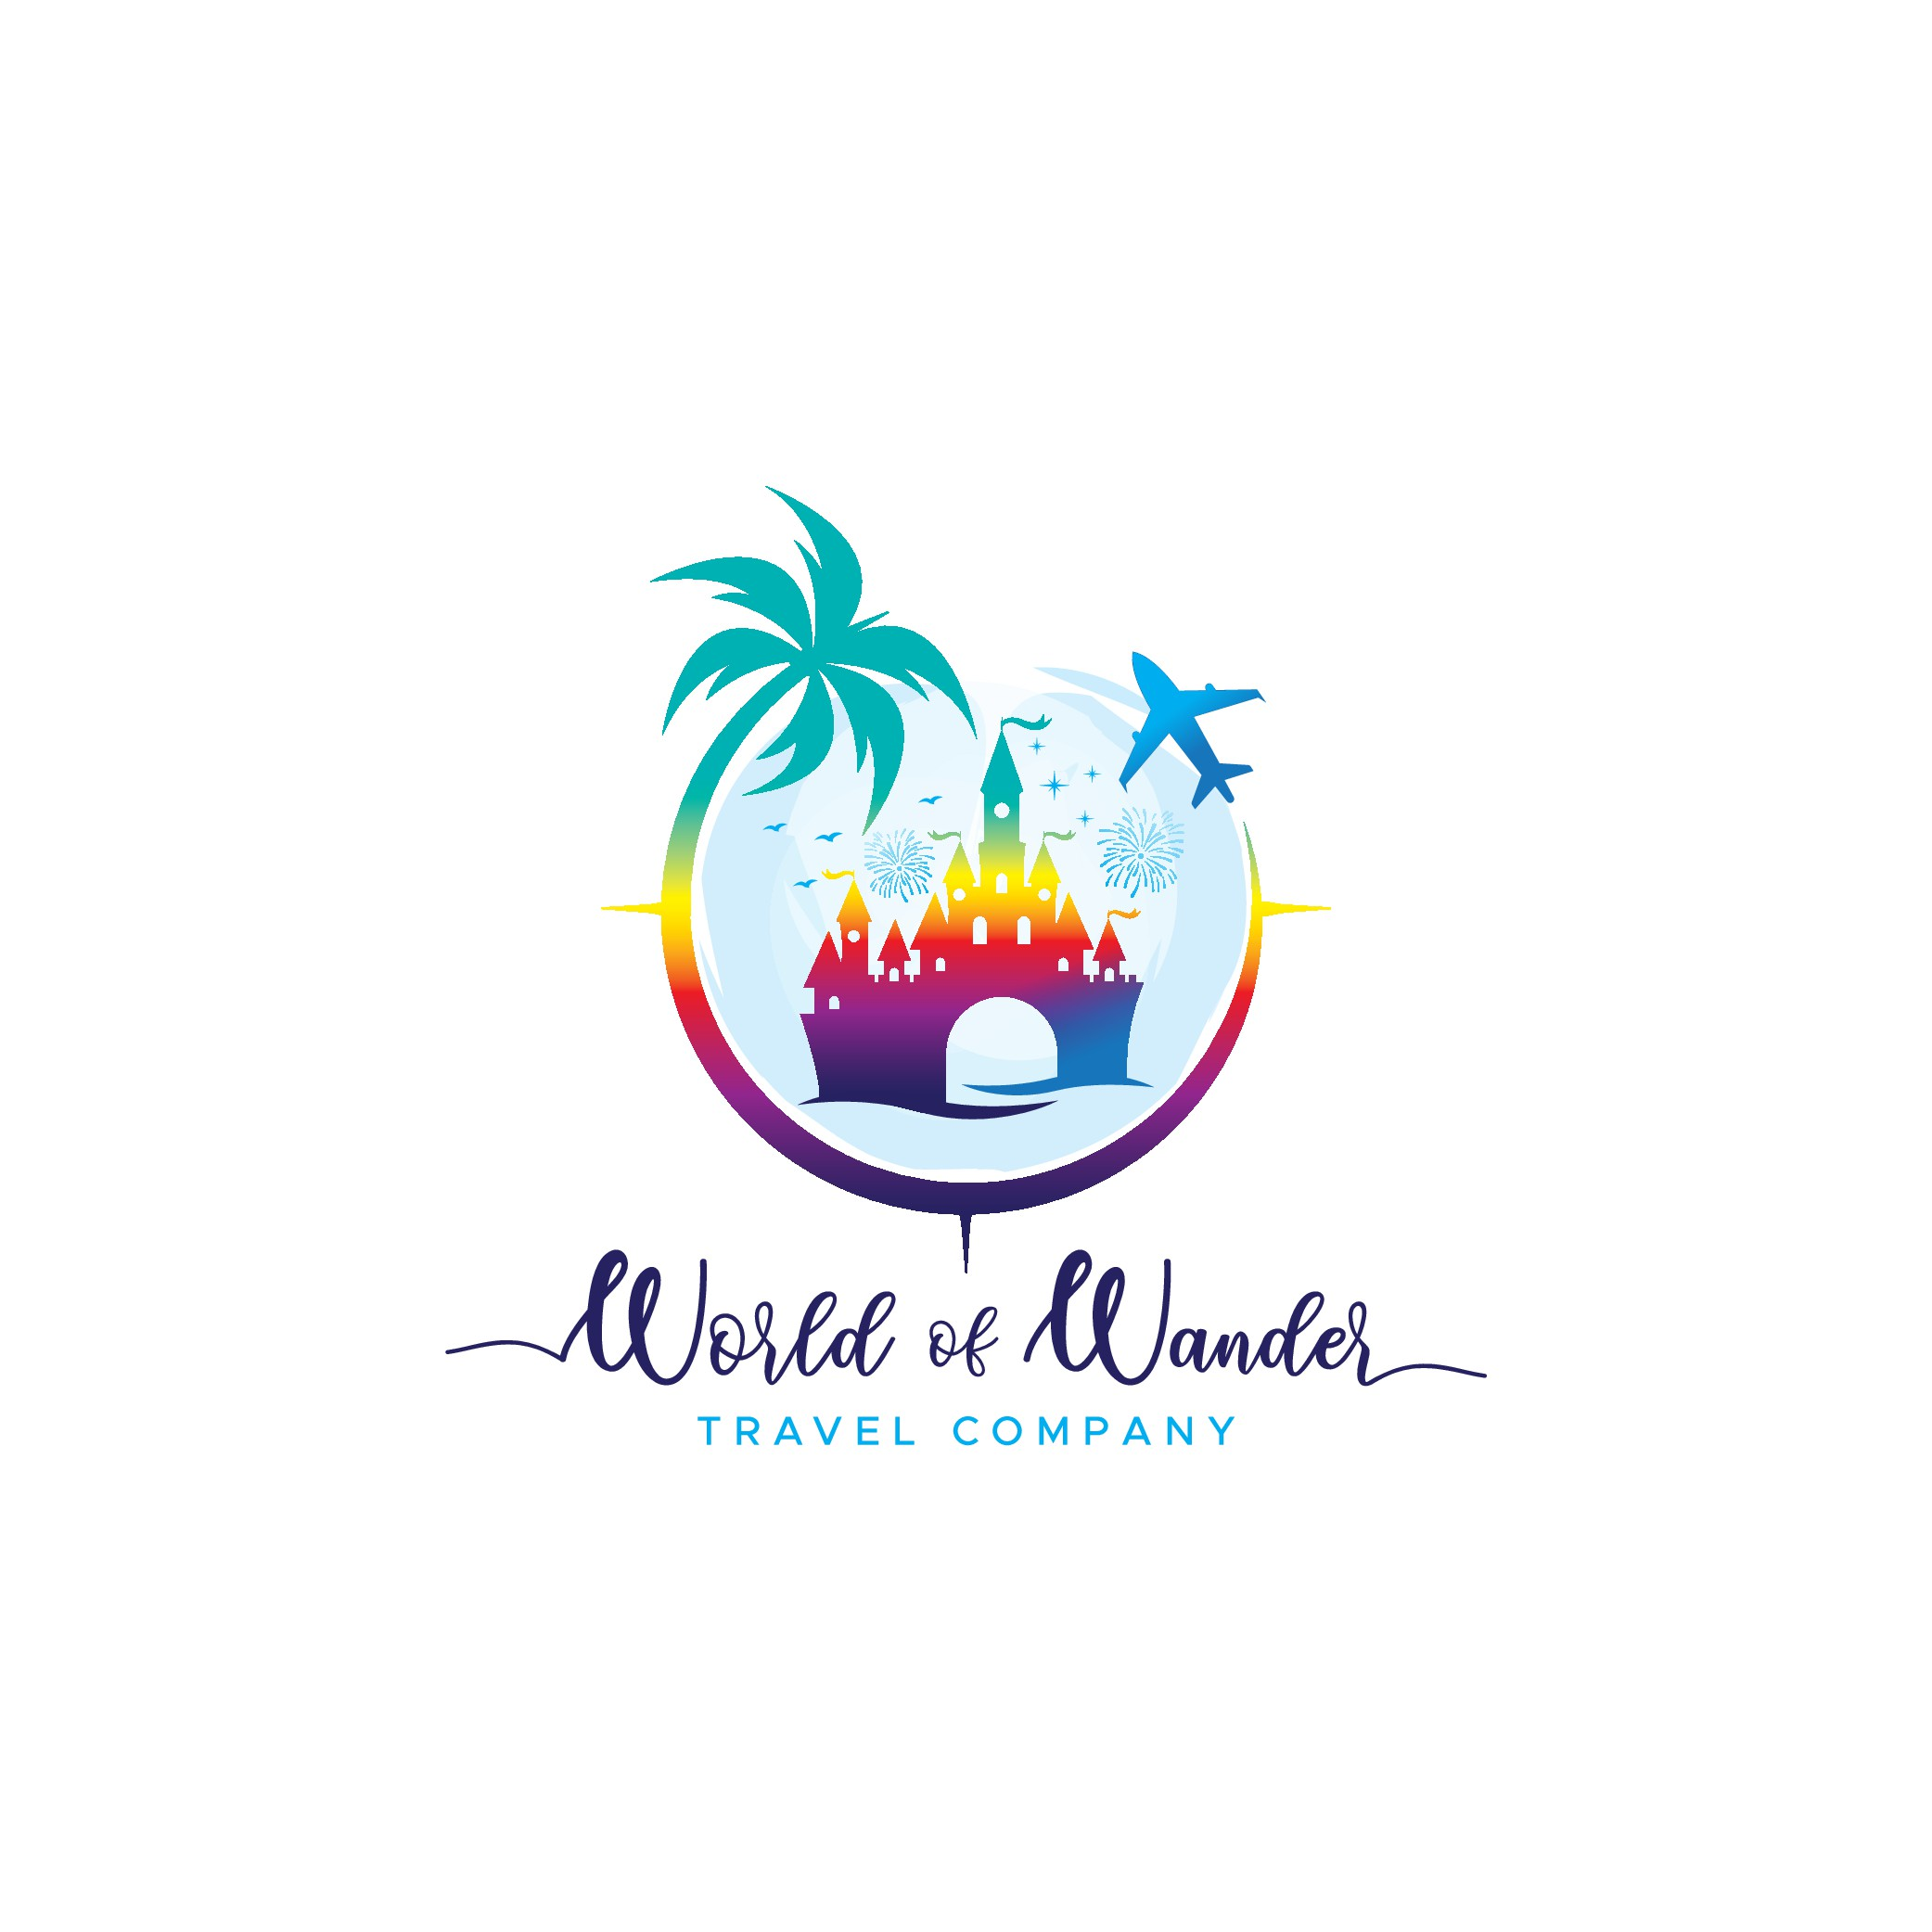 Fun Travel Agency focused on Disney & tropical vacations